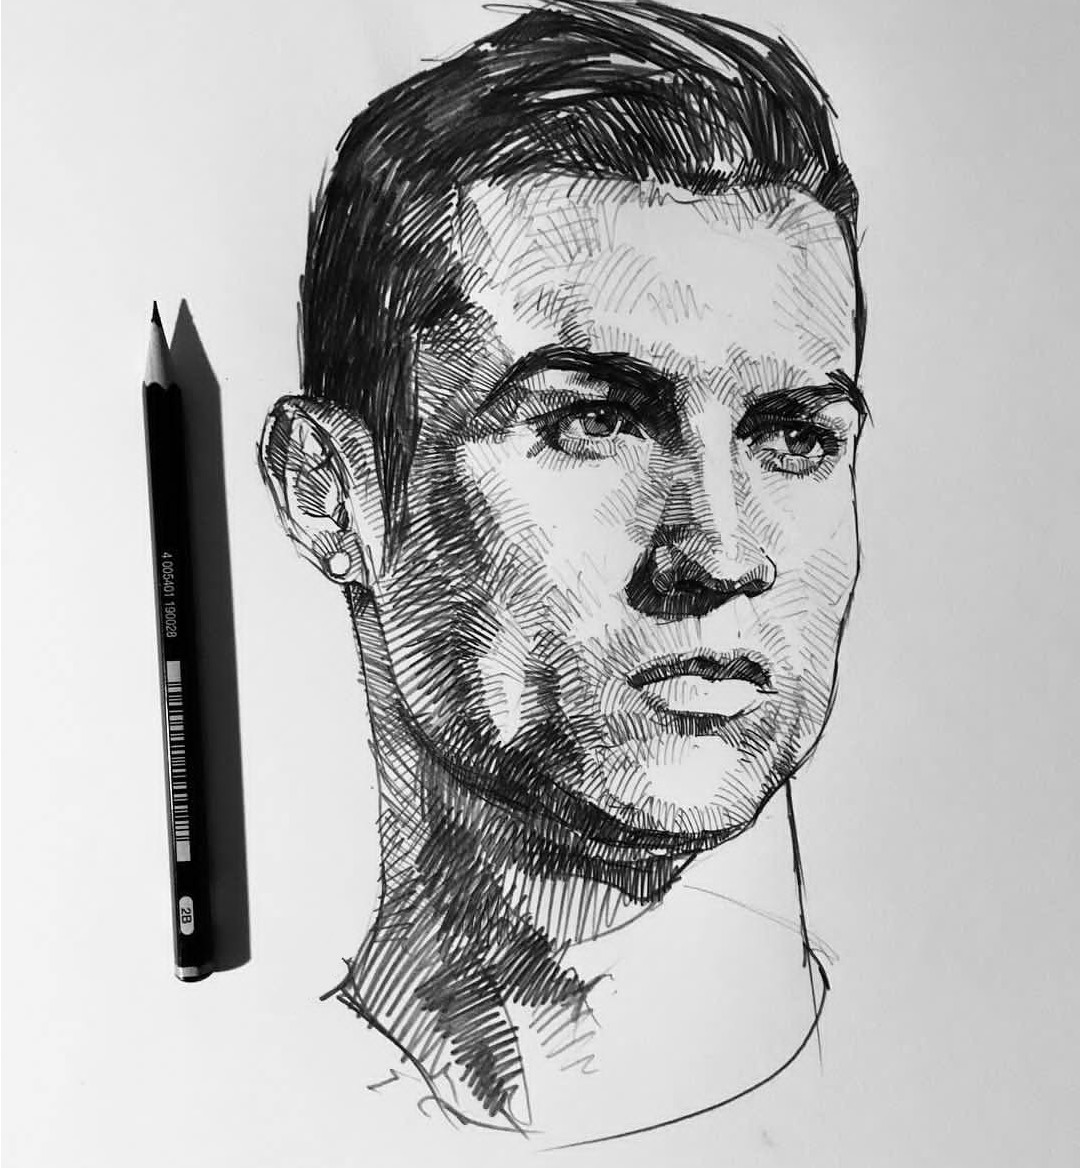 Artstation cristiano ronaldo mad at art